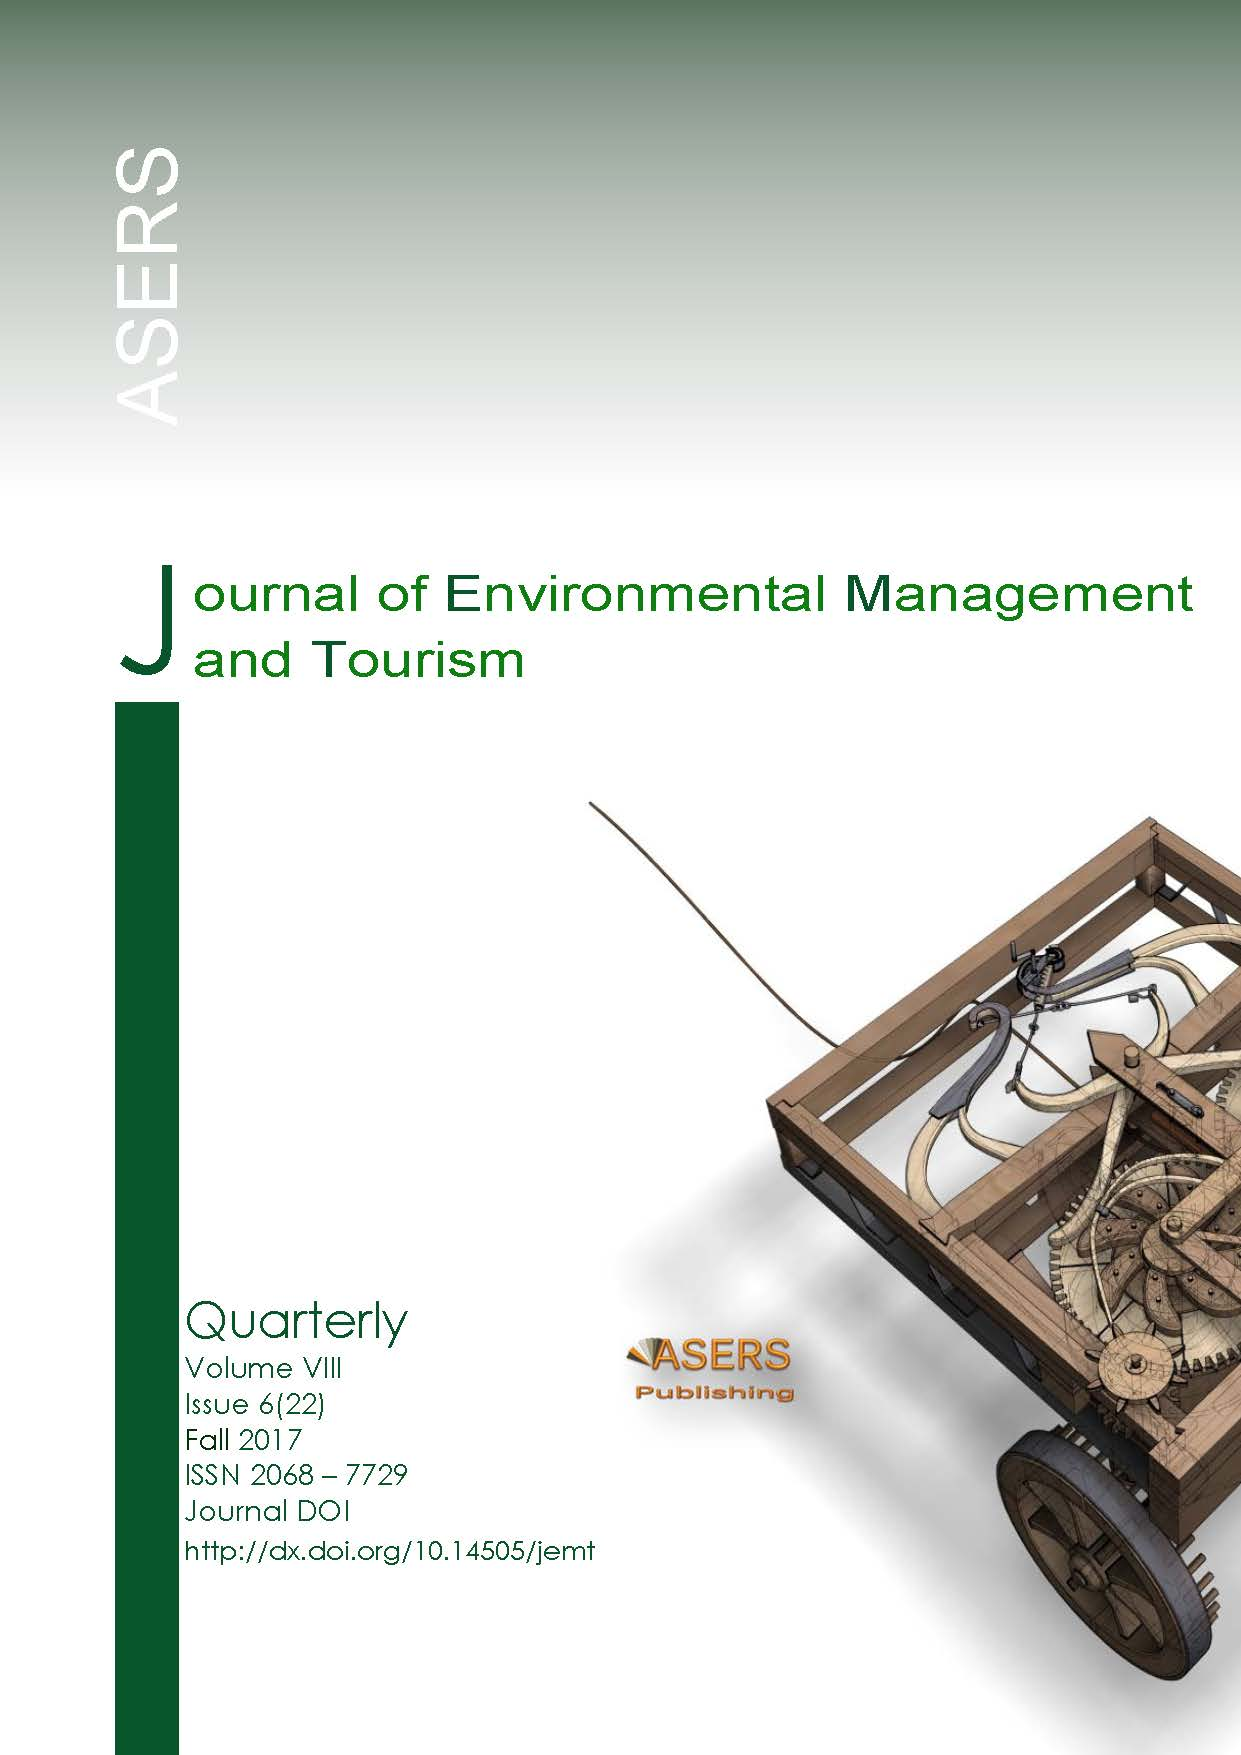 Journal of Environmental Management and Tourism